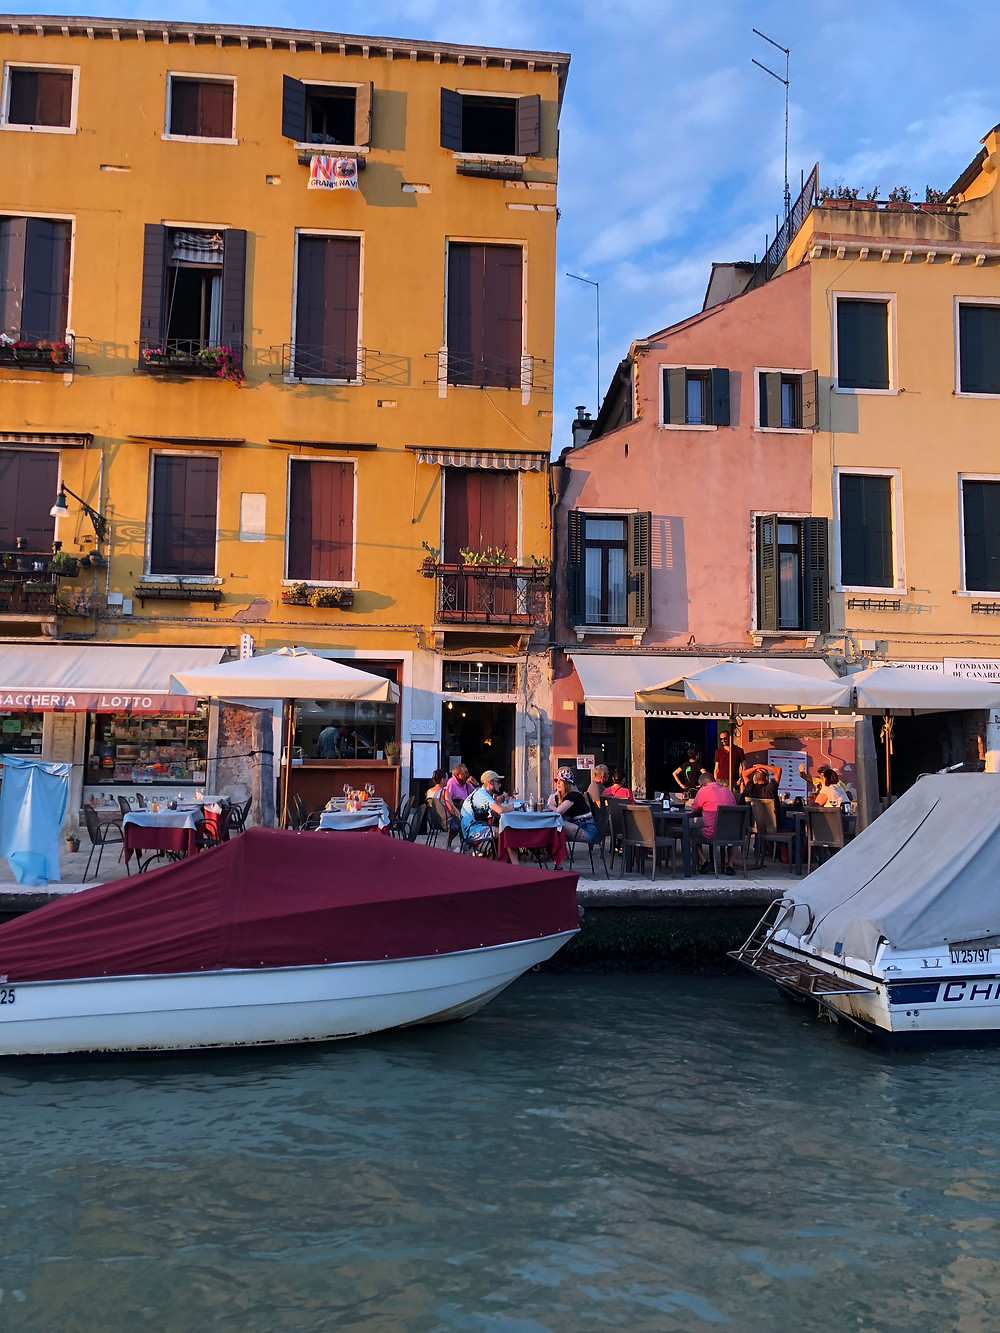 yellow building with red shutters along canal in Venice with boats and people eating at restaurants under umbrellas waterside